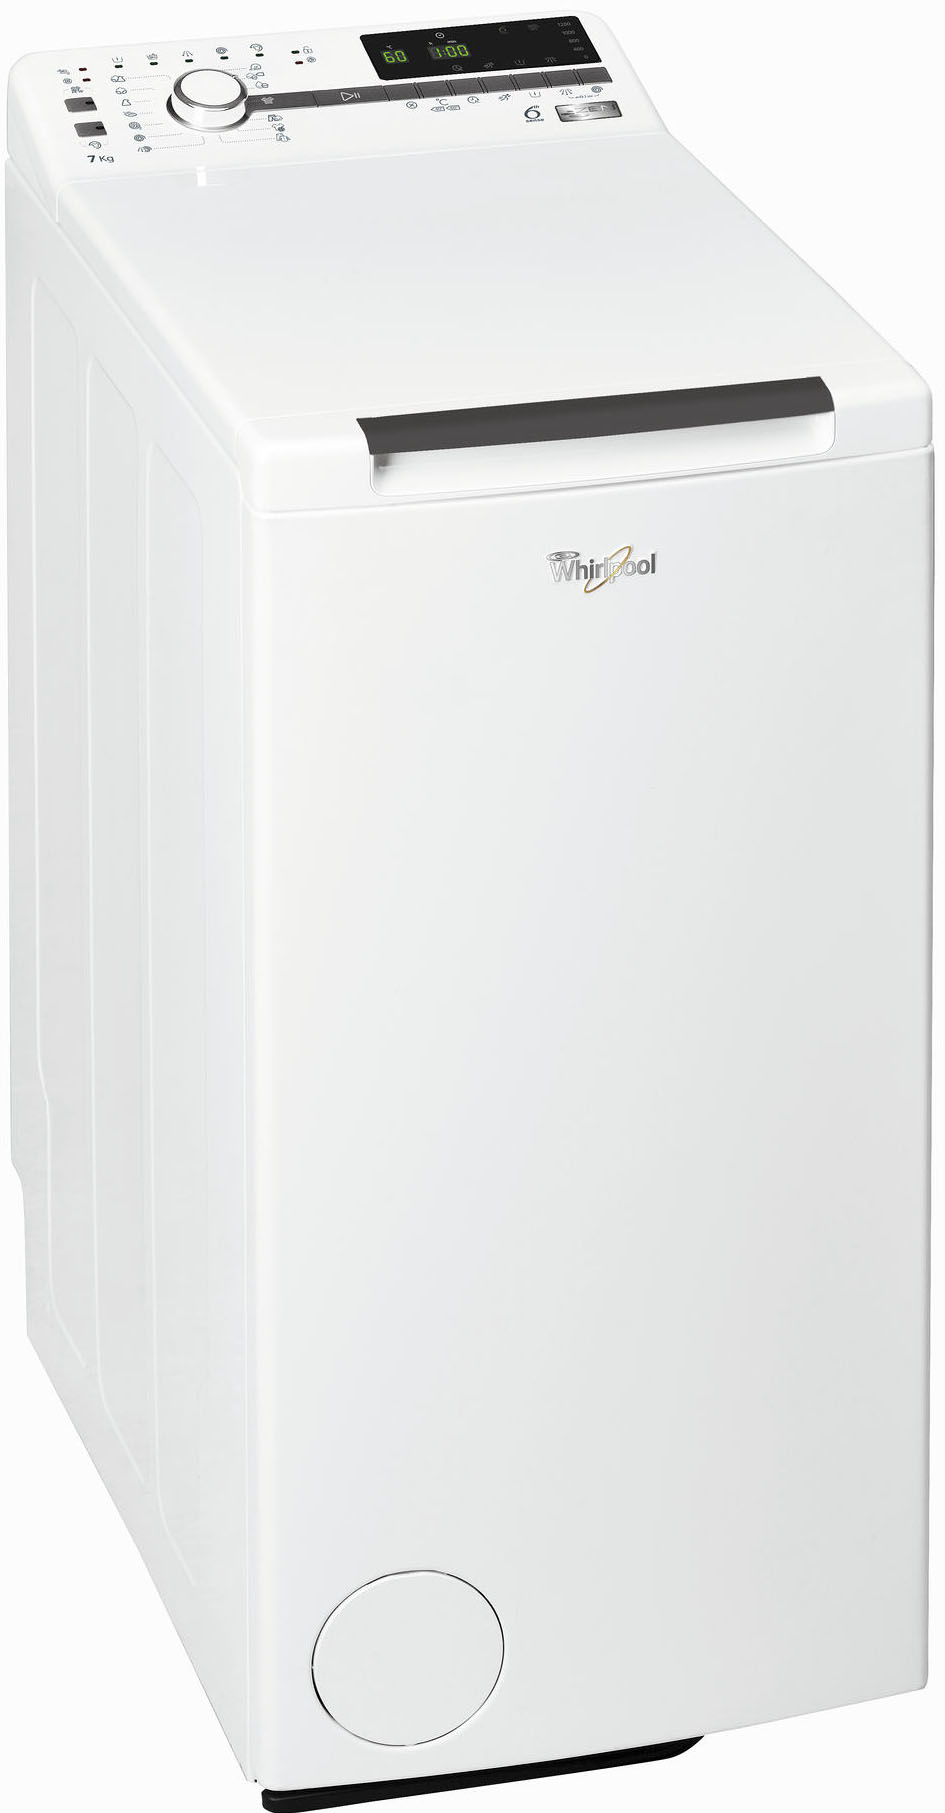 Image of Whirlpool TDLR 70230